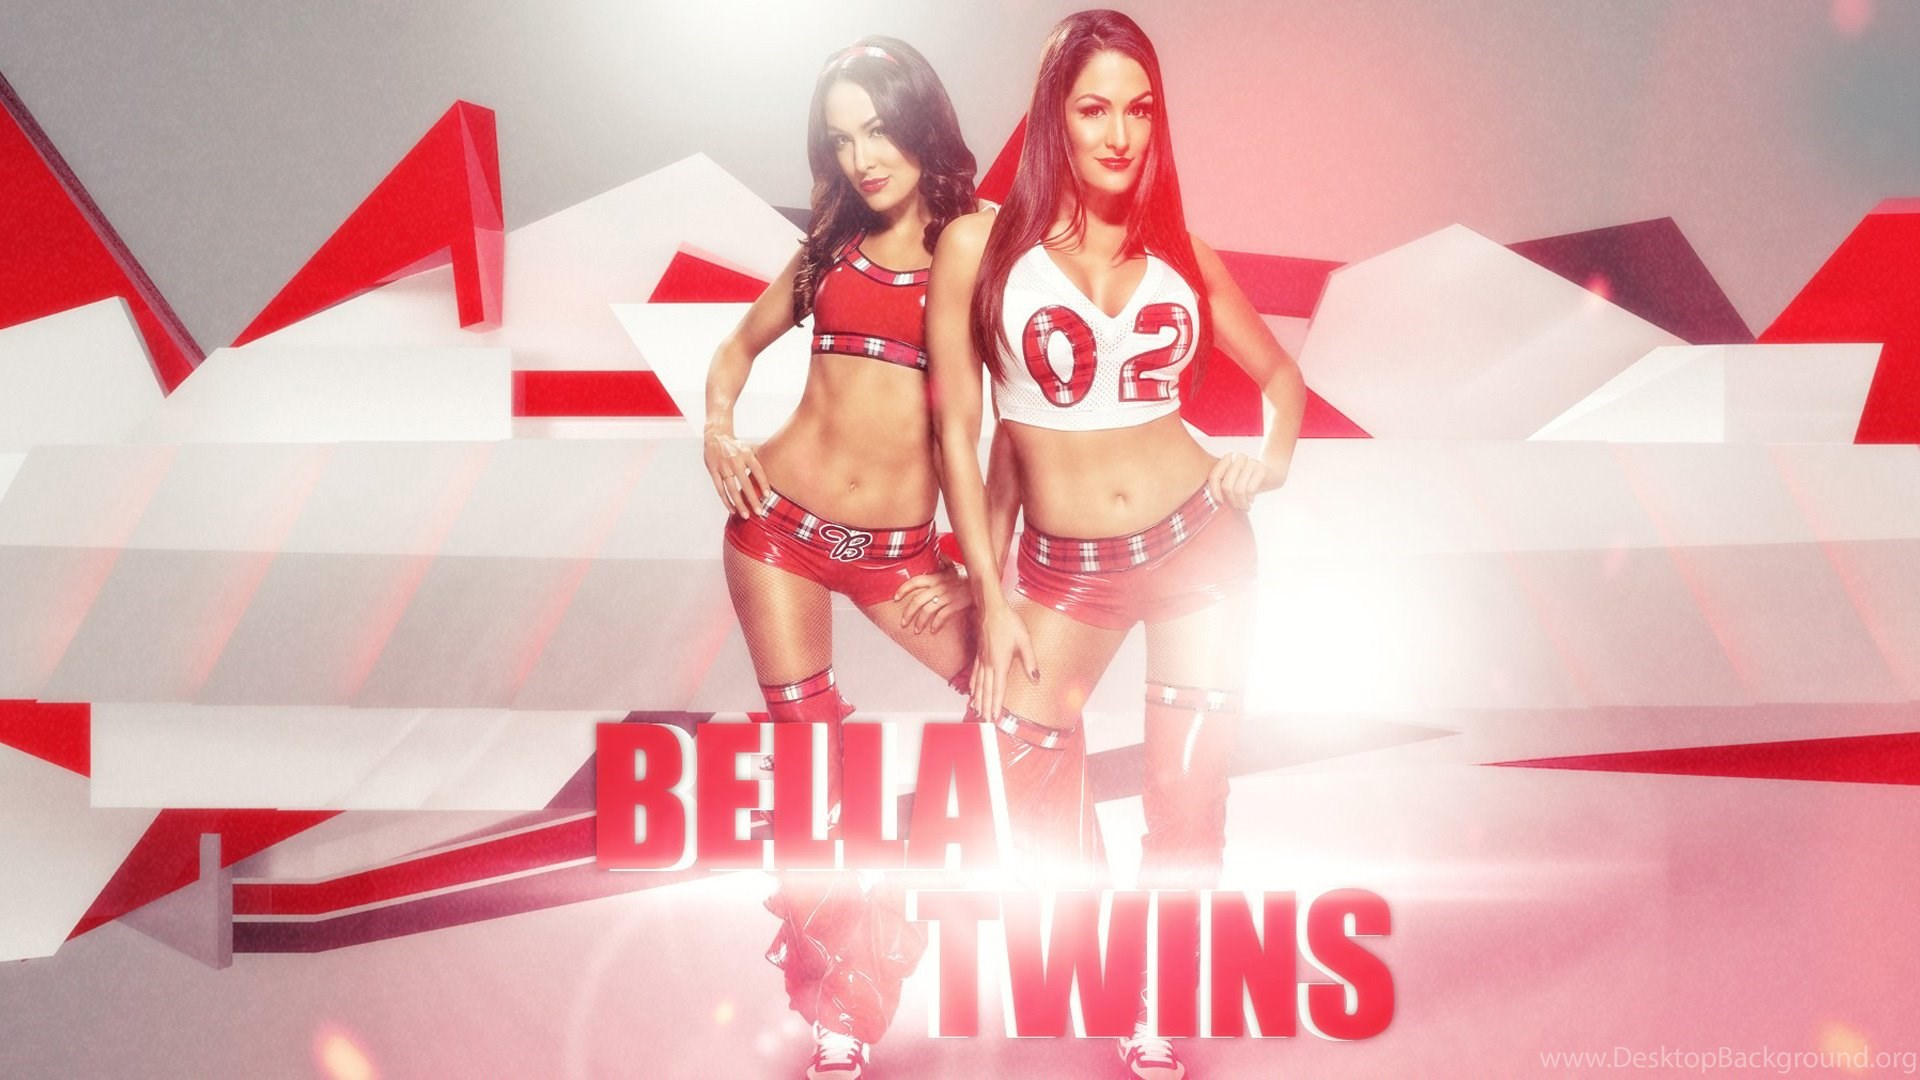 WWE Bella Twins HD Wallpapers Desktop Background